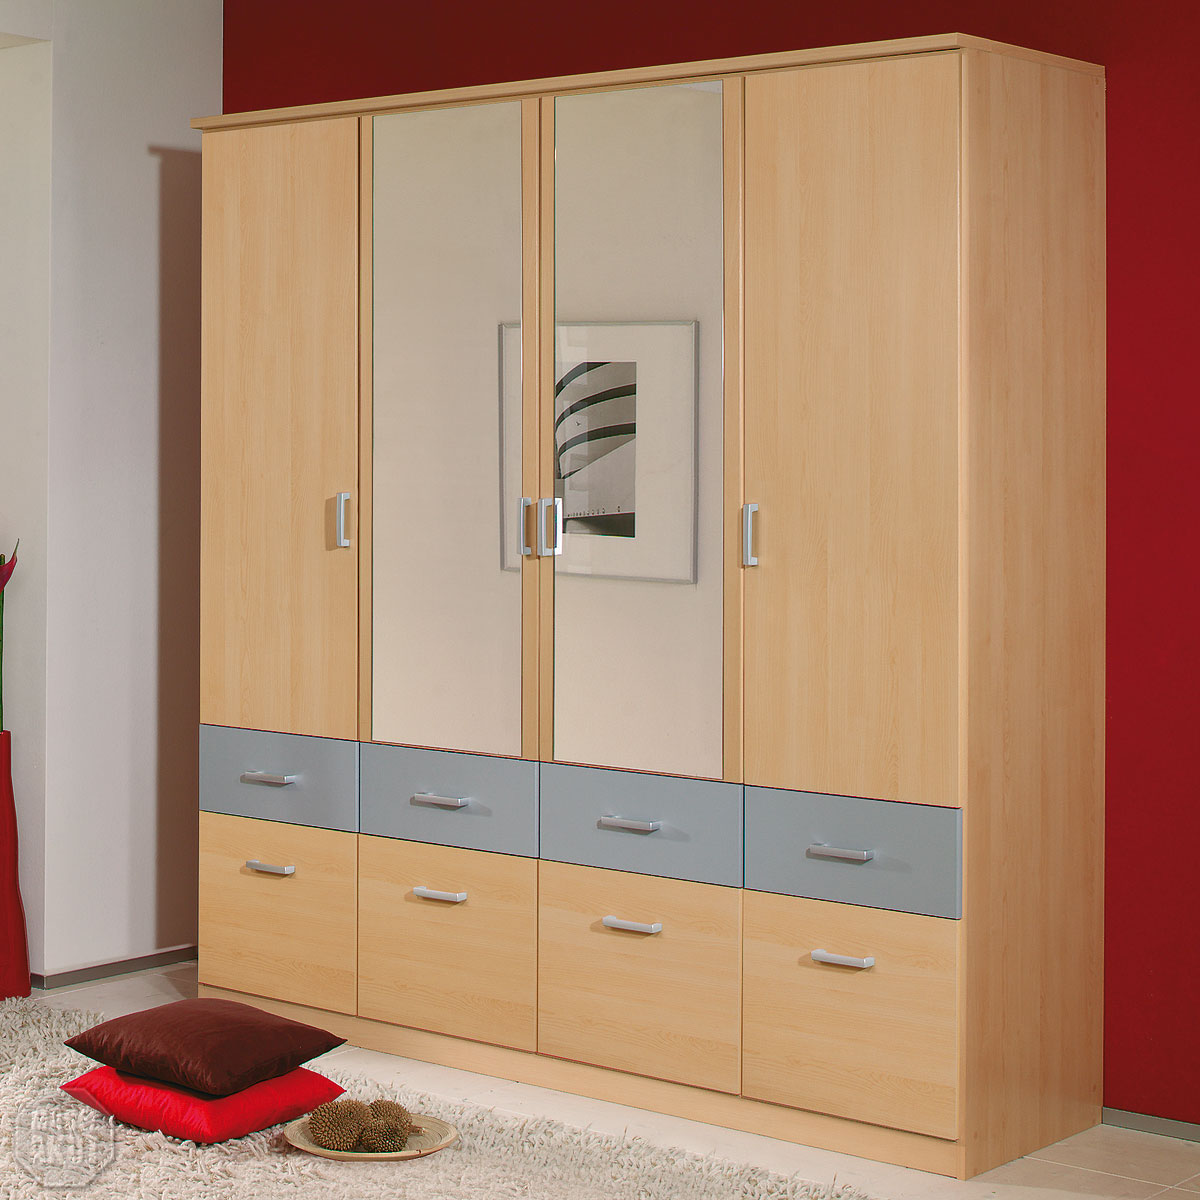 kleiderschrank bremen schrank w scheschrank in berg ahorn alu spiegel 181 cm ebay. Black Bedroom Furniture Sets. Home Design Ideas